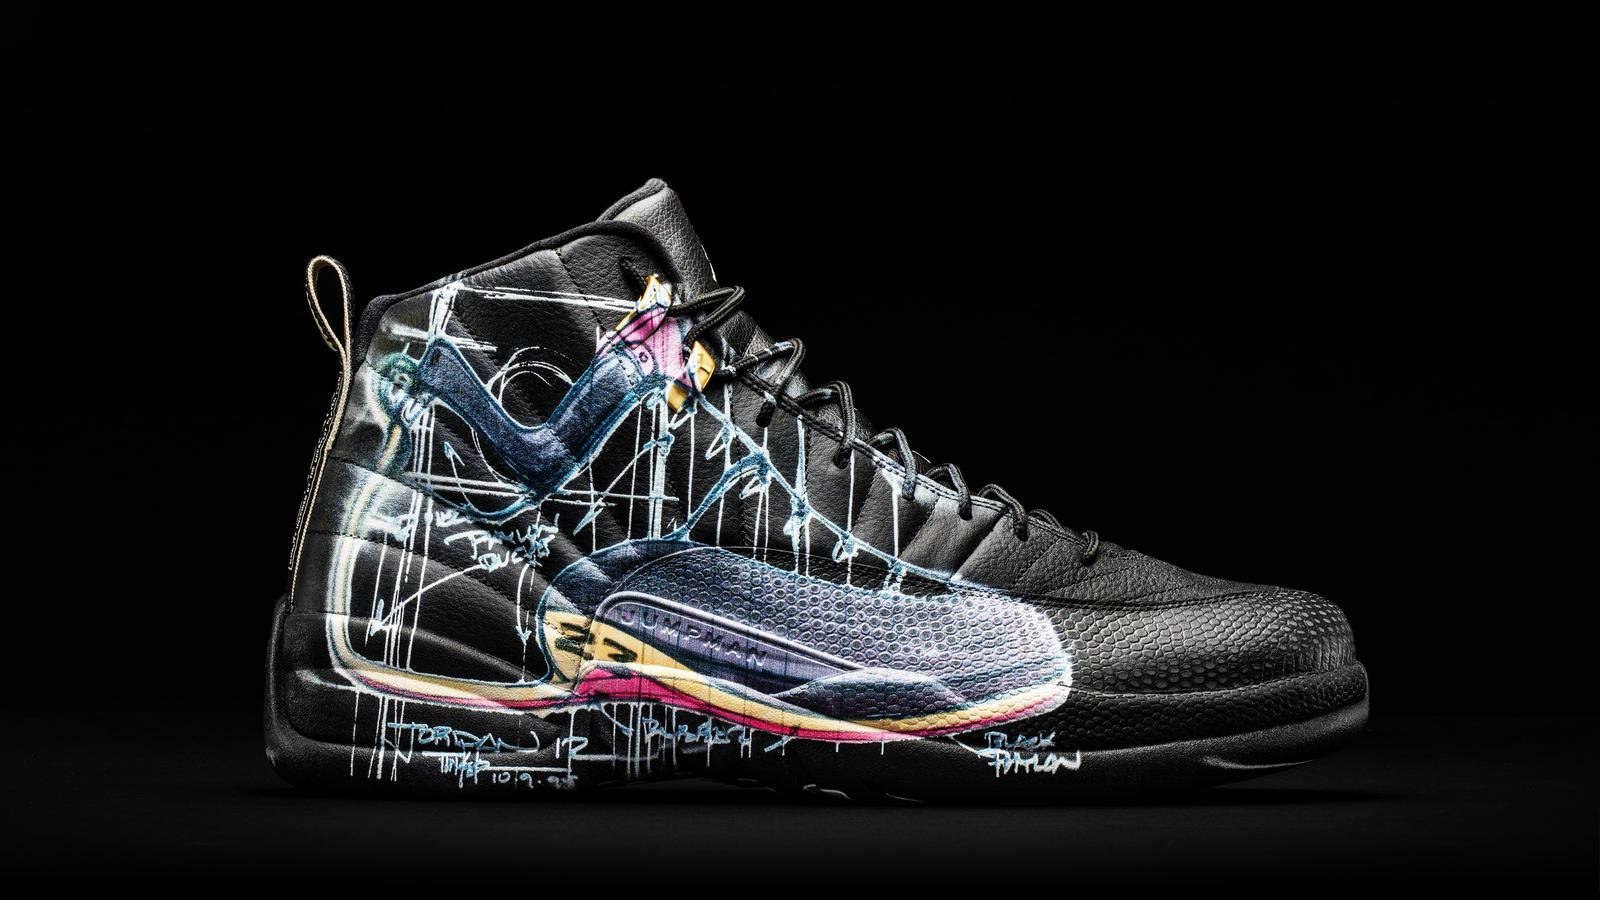 low priced d7f36 65cb9 Nike News - Nike Donates a Dozen Exclusively Designed Jordan XII to OHSU  Doernbecher